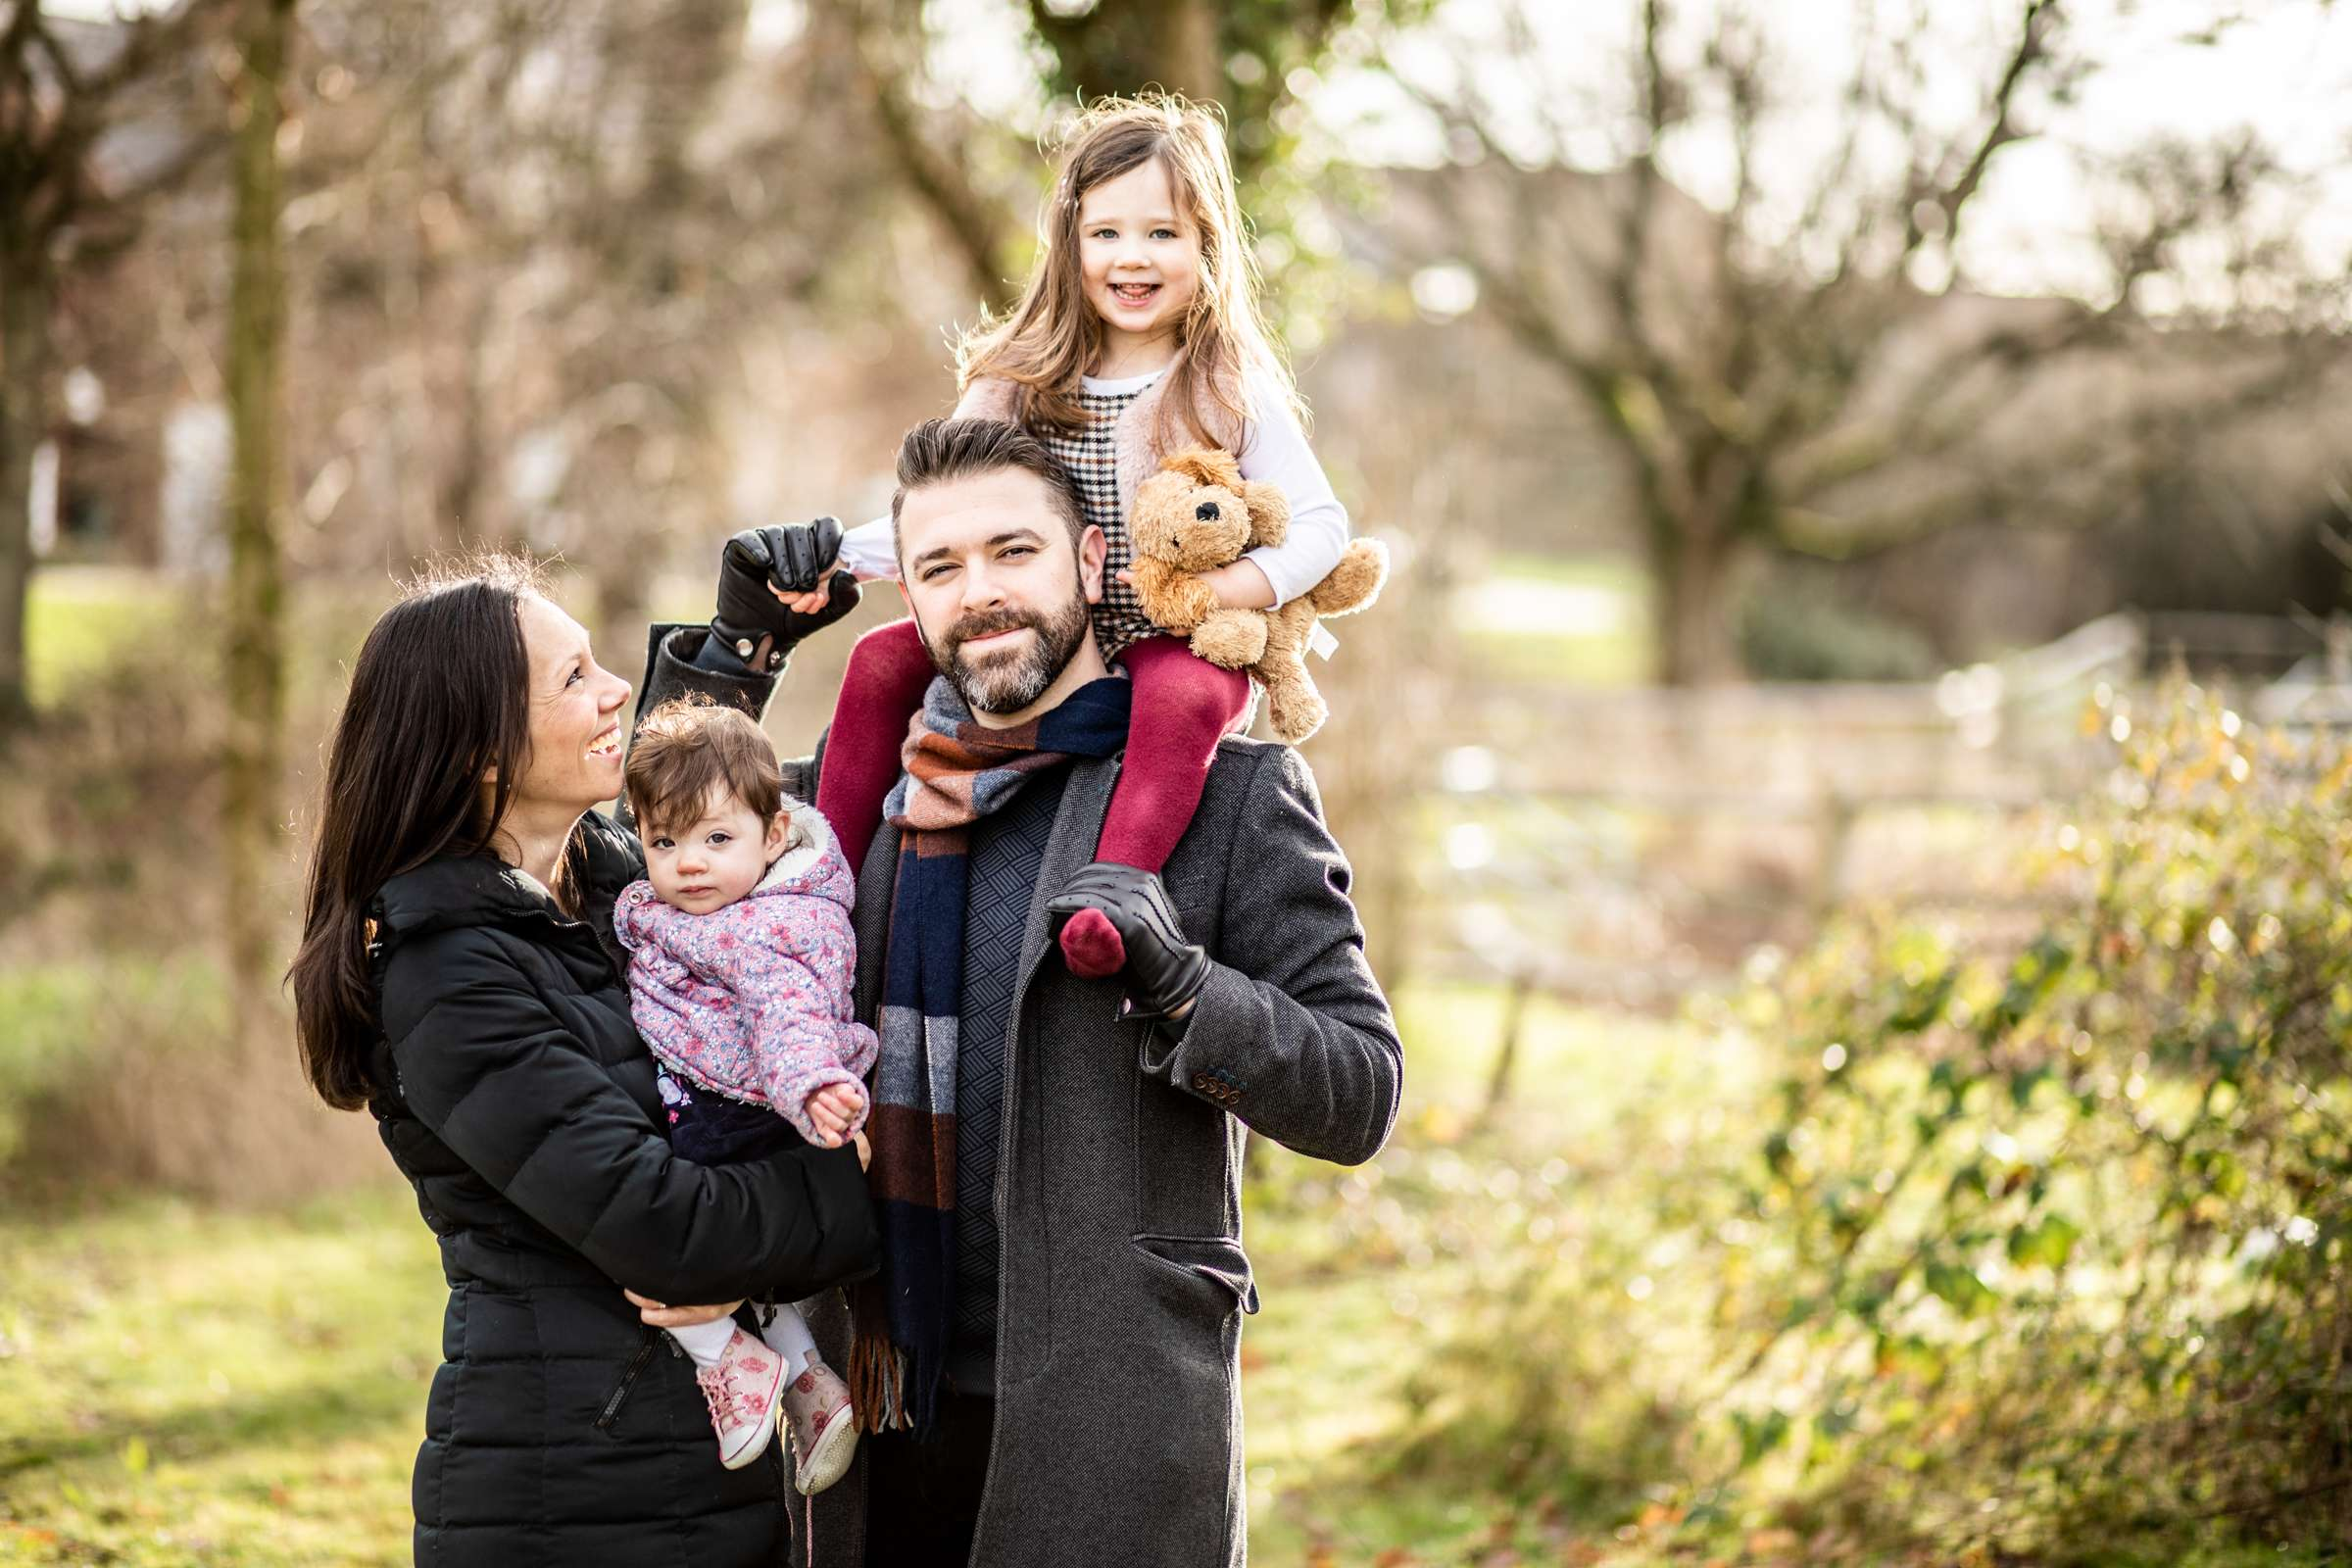 An outdoor portrait photo of a family with a baby and child wearing winter coats